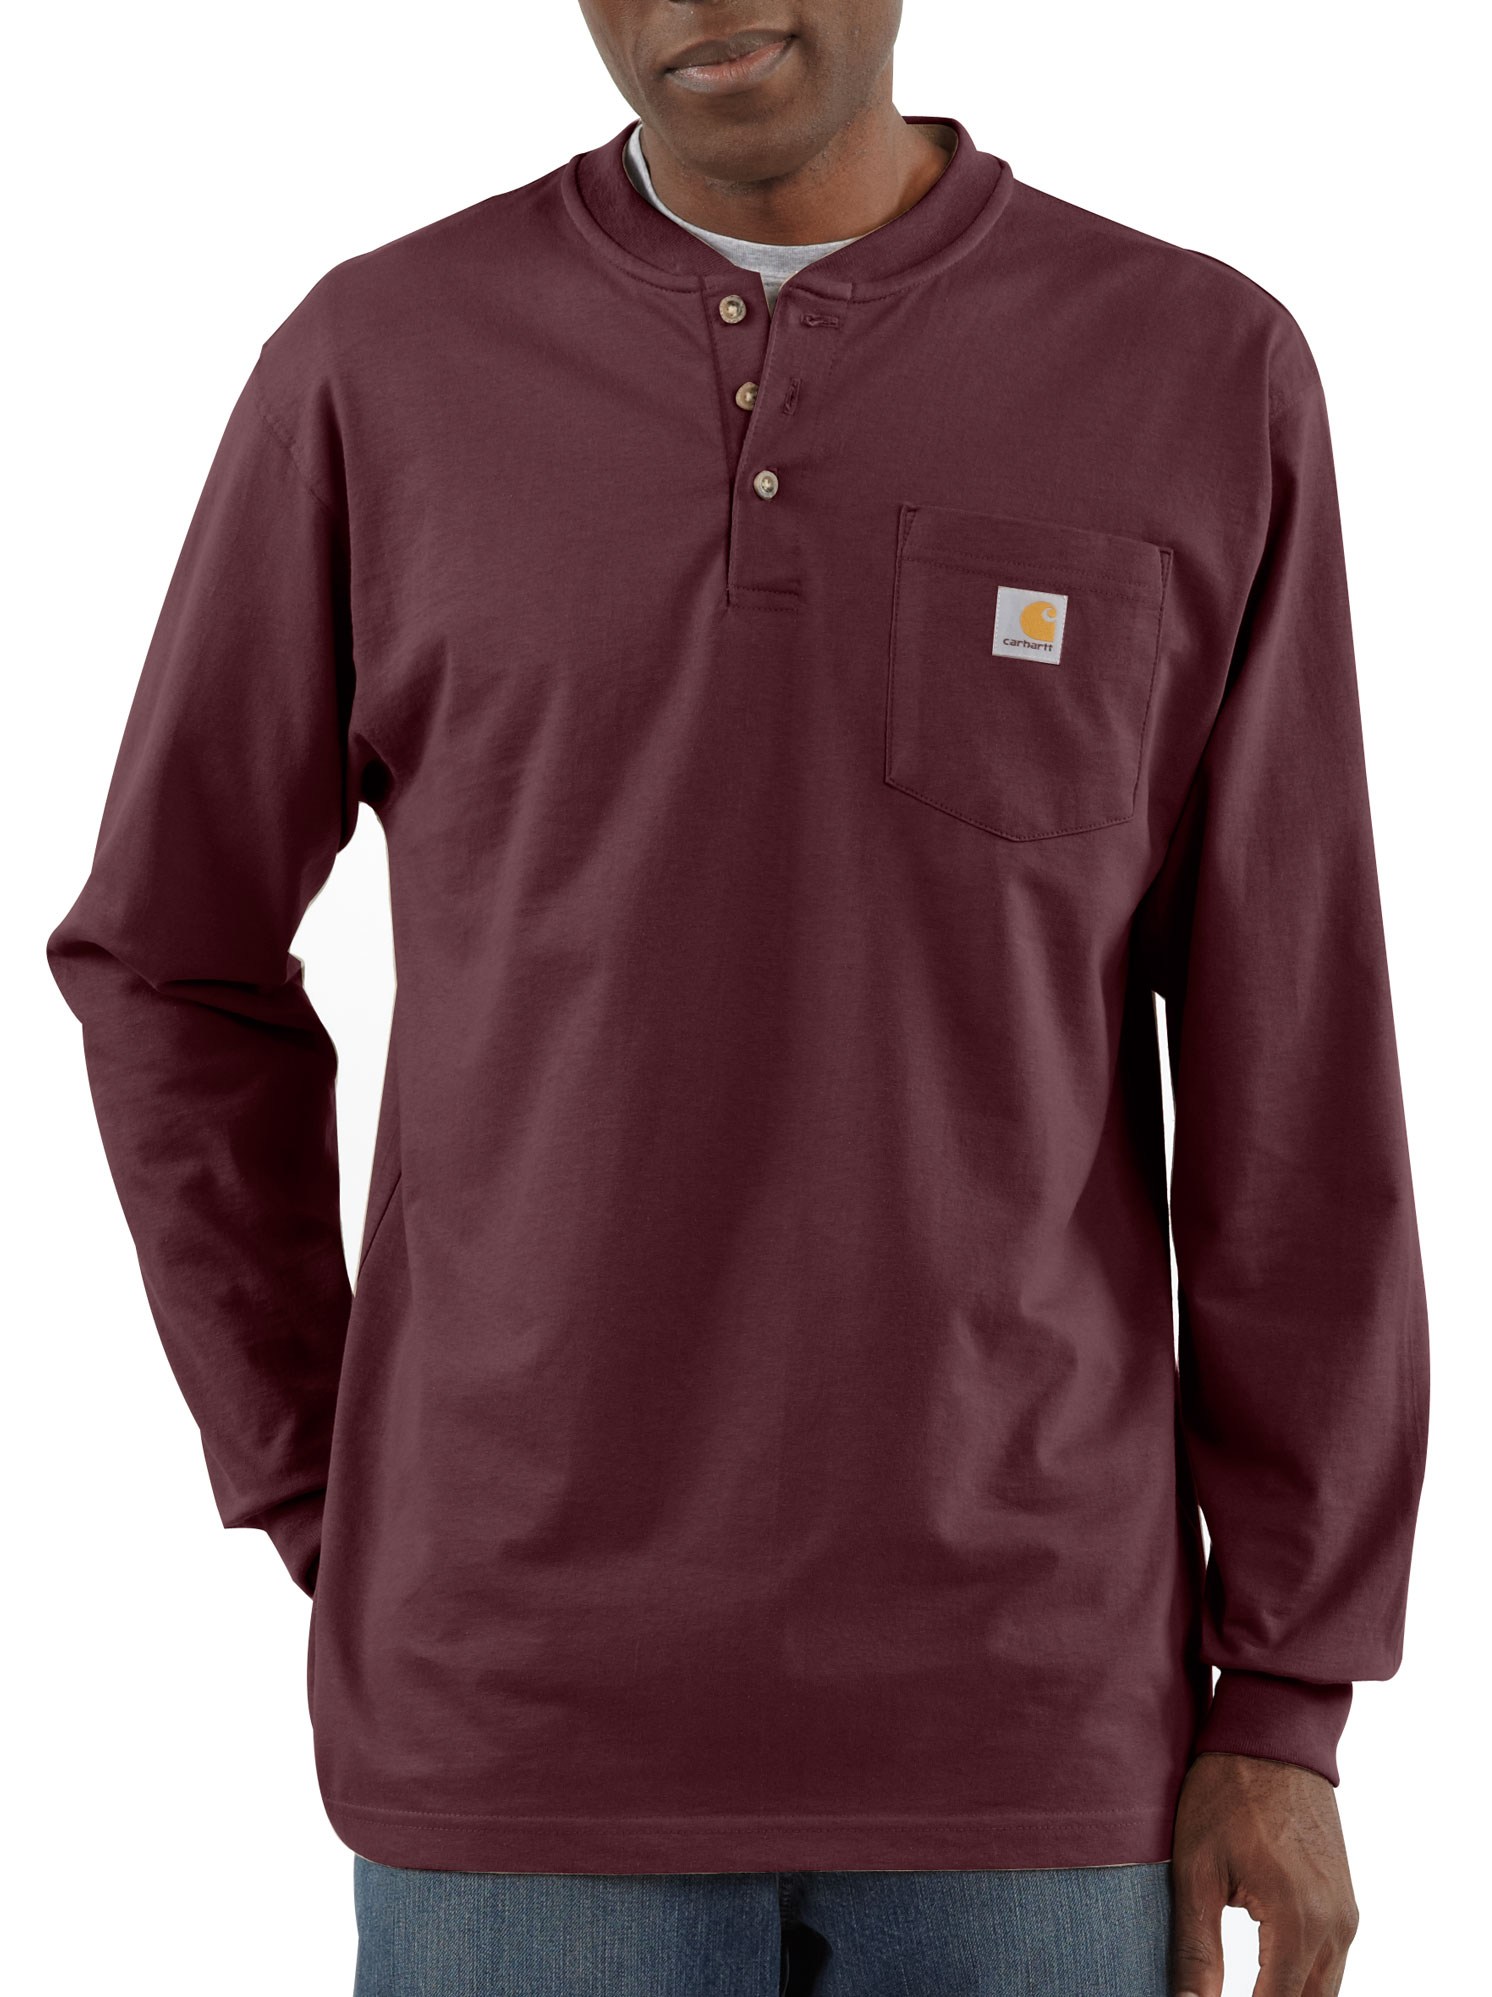 Carhartt Mens Pocket Long-Sleeve Henley